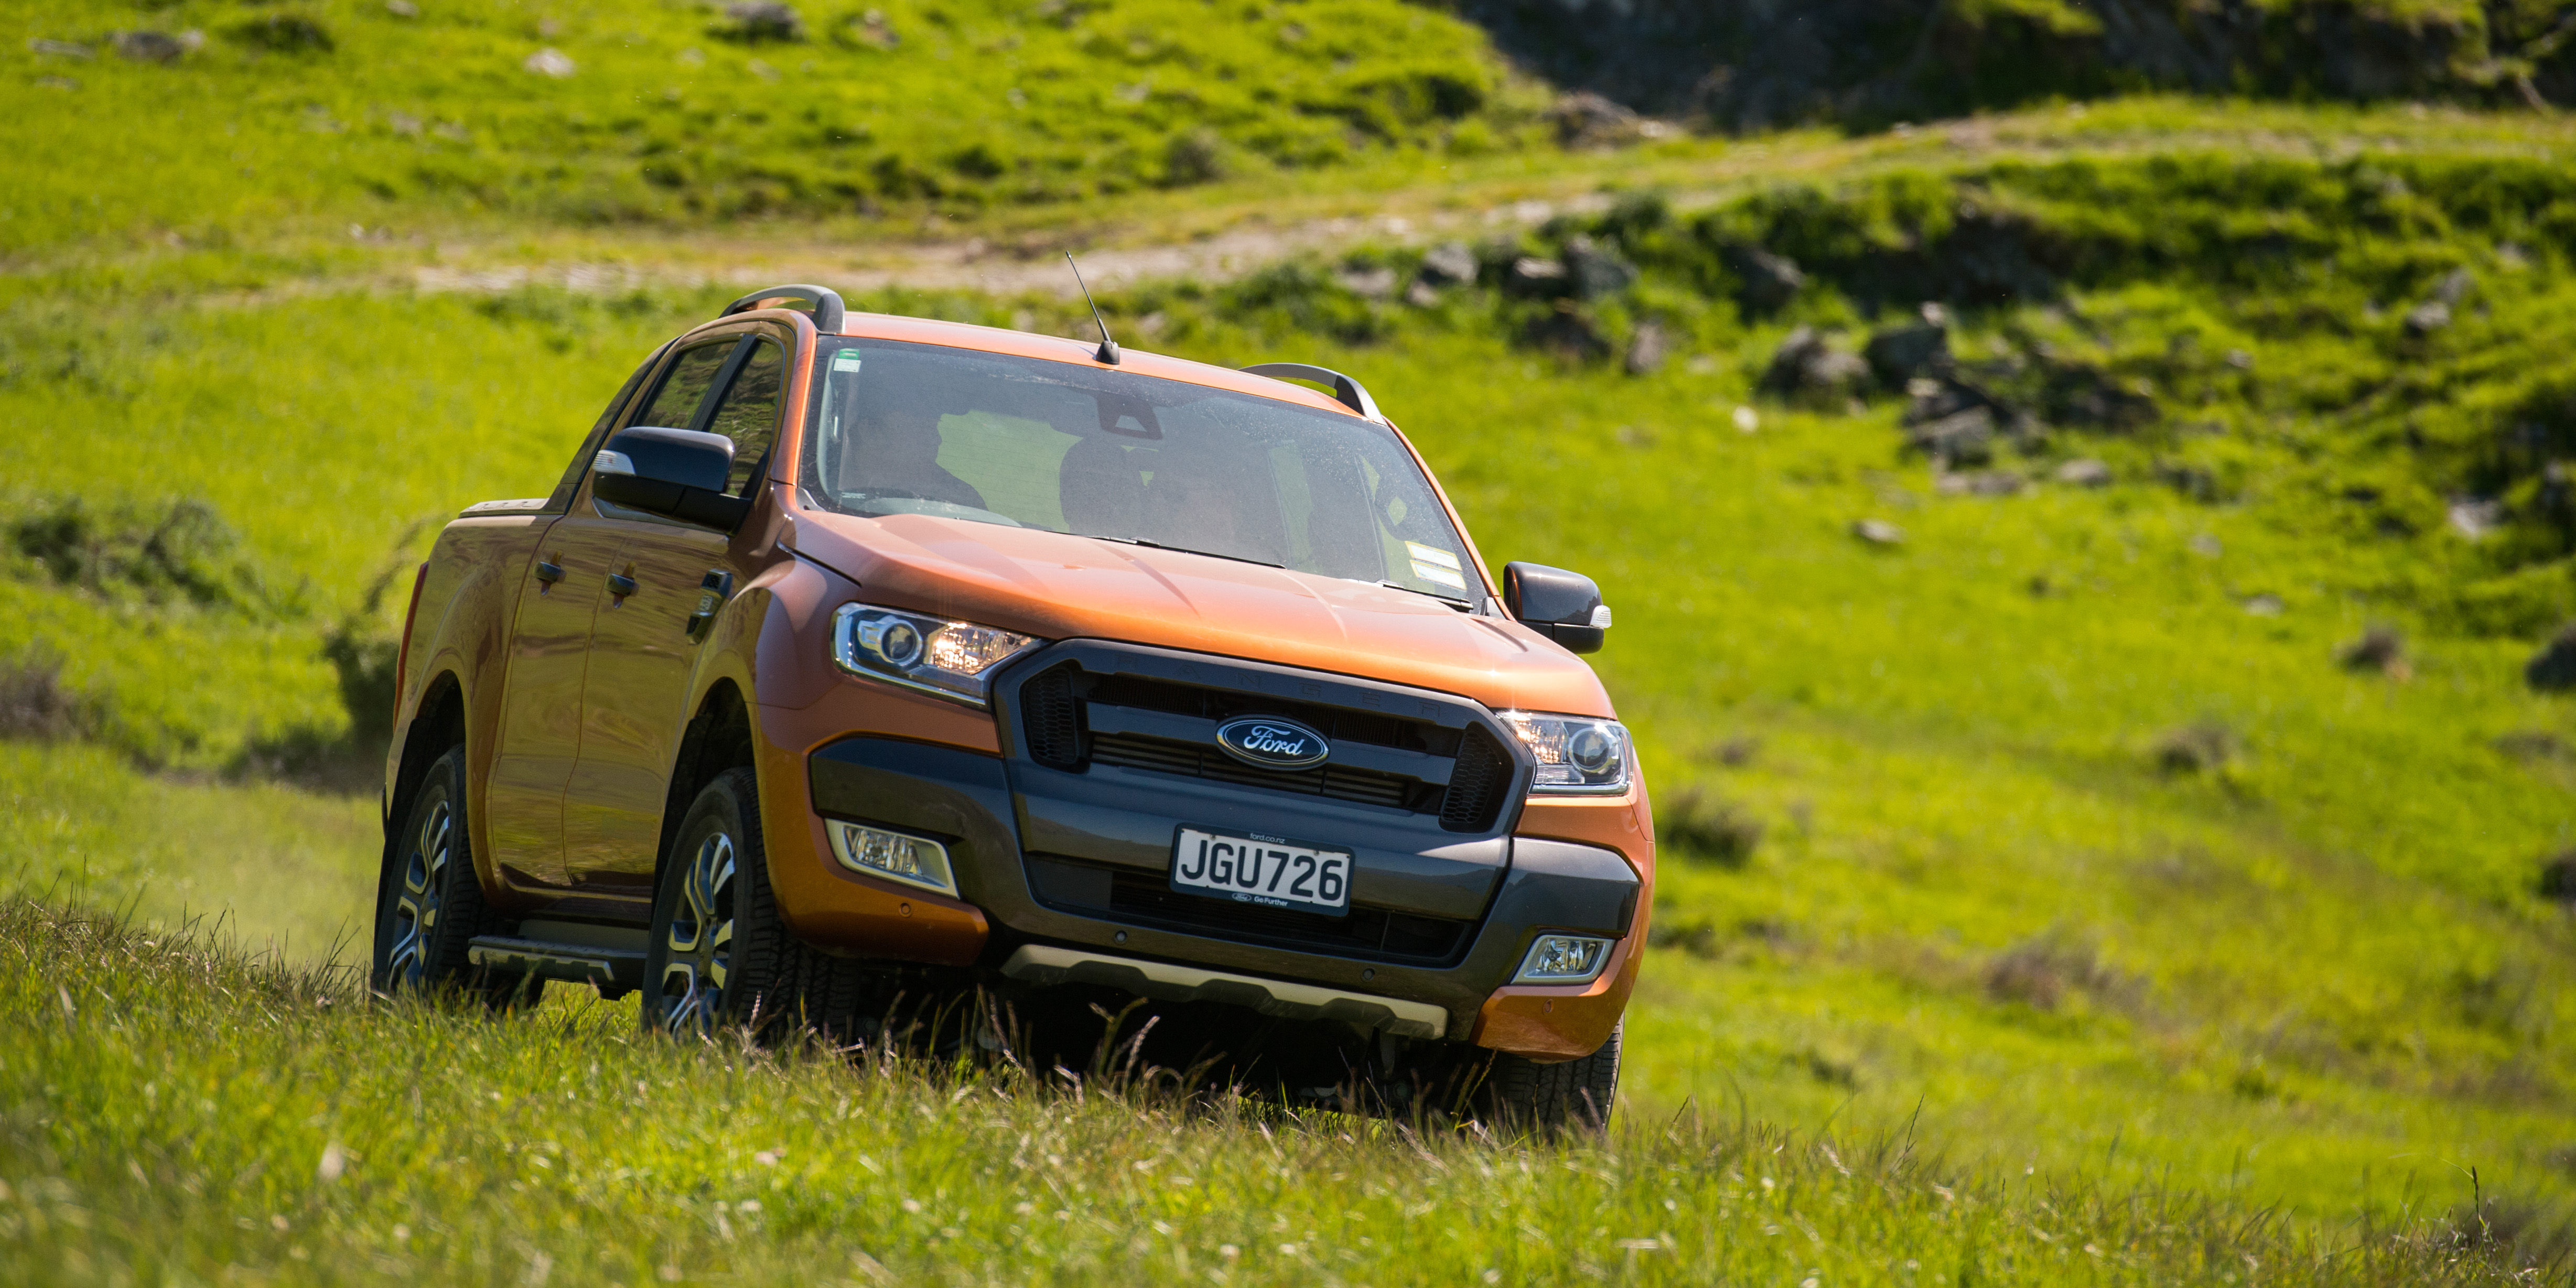 Awesome 2016 Ford Ranger  Lifestyle Adventure In New Zealand